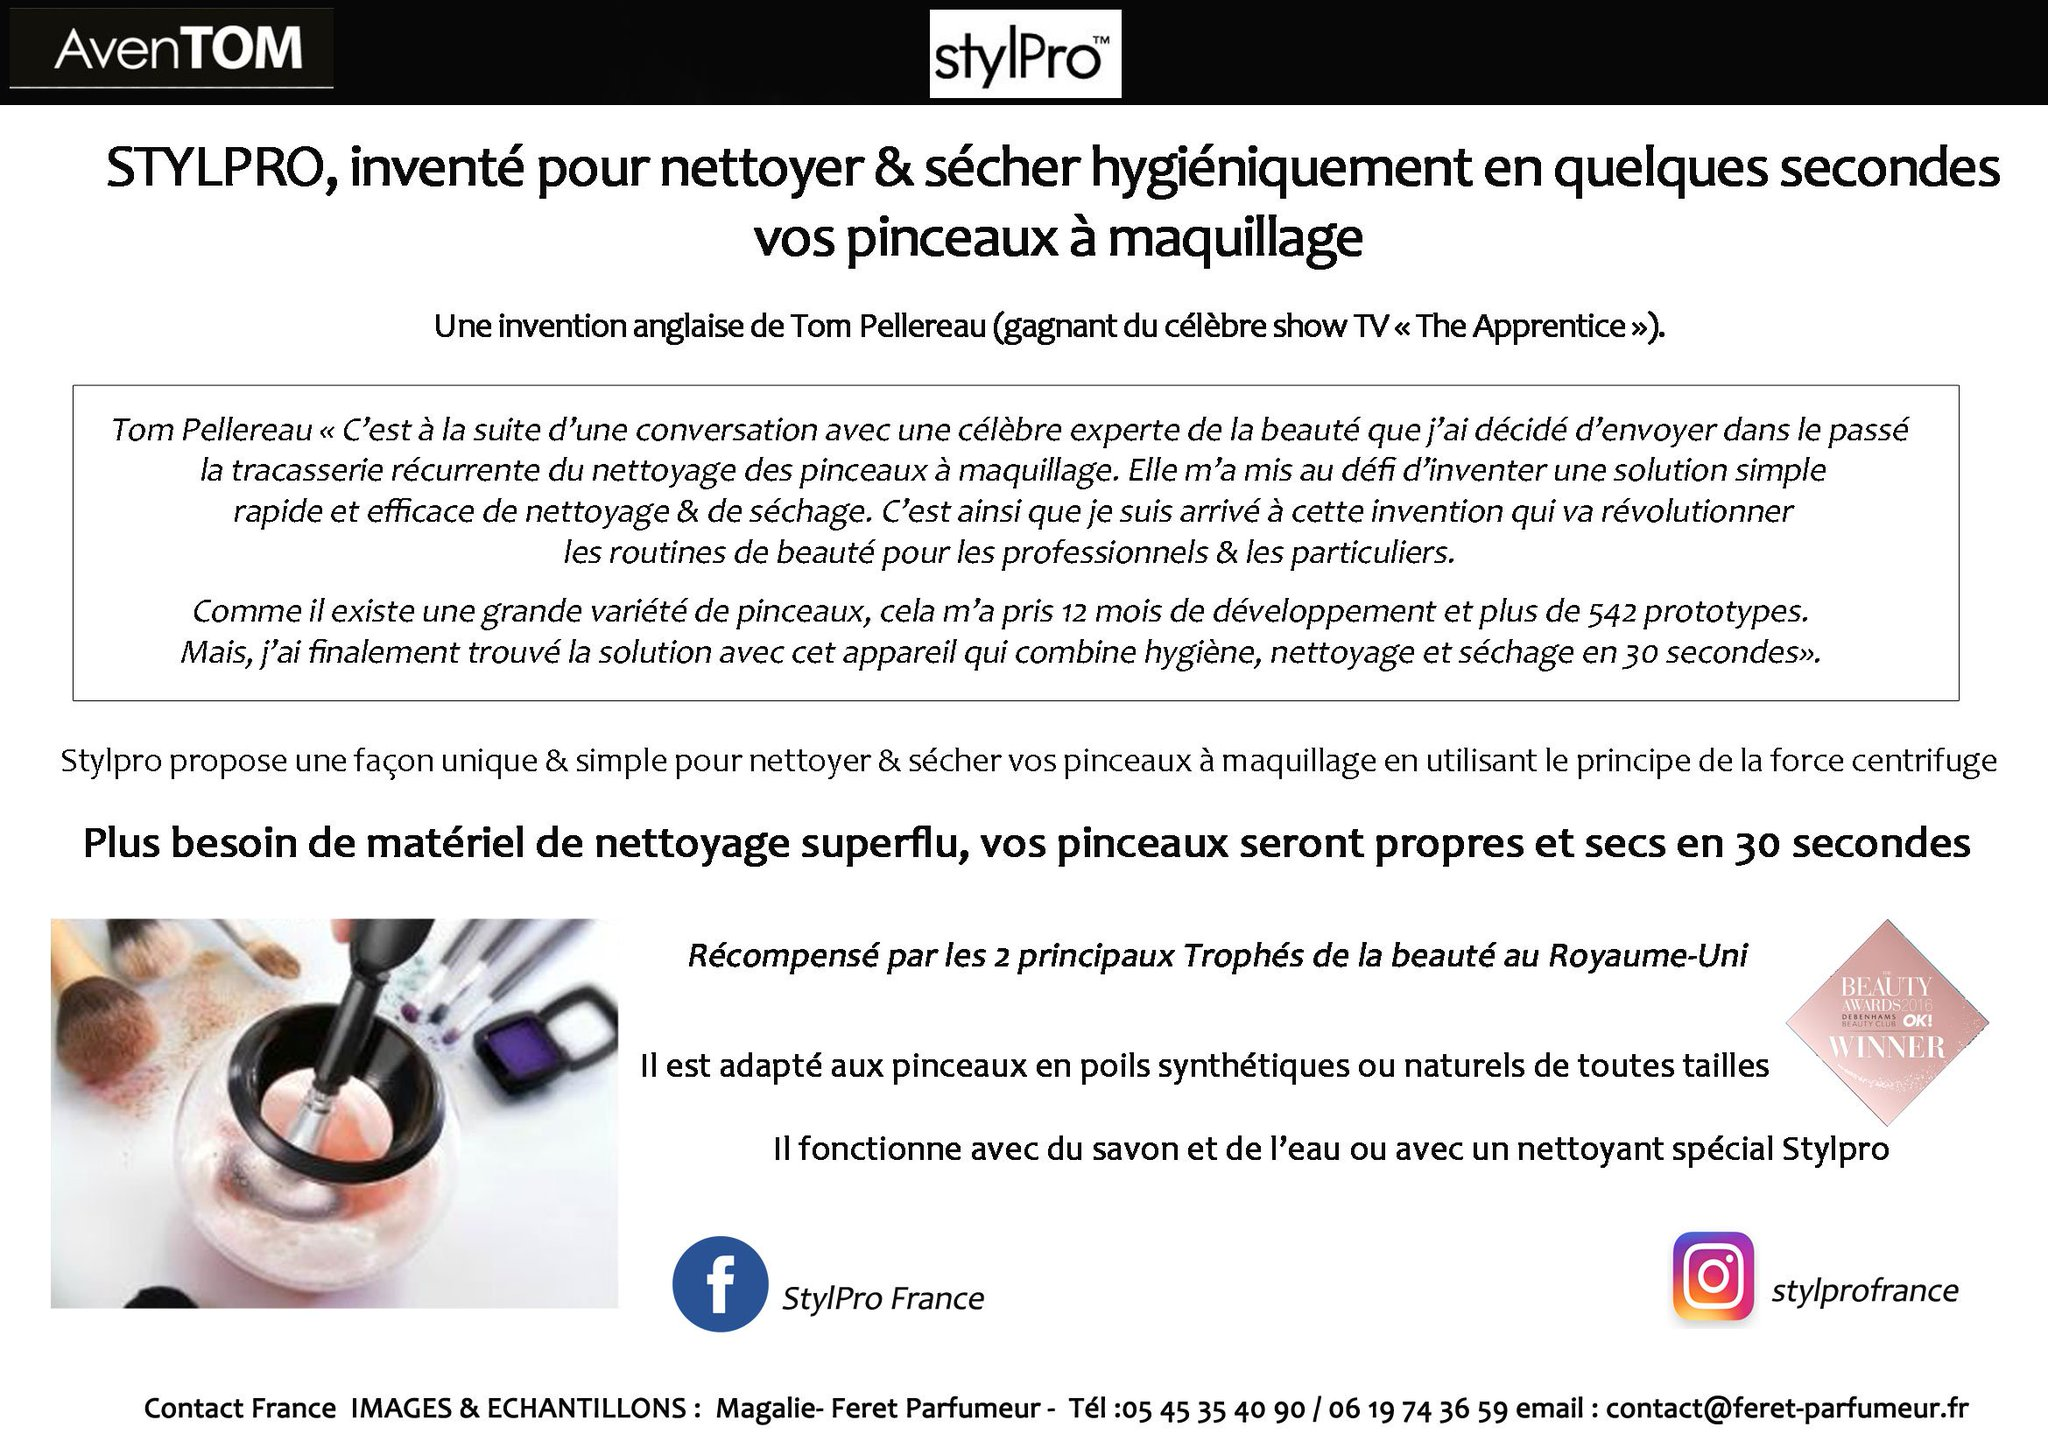 For our French Stypro customers https://t.co/Ew7rL7aBIc